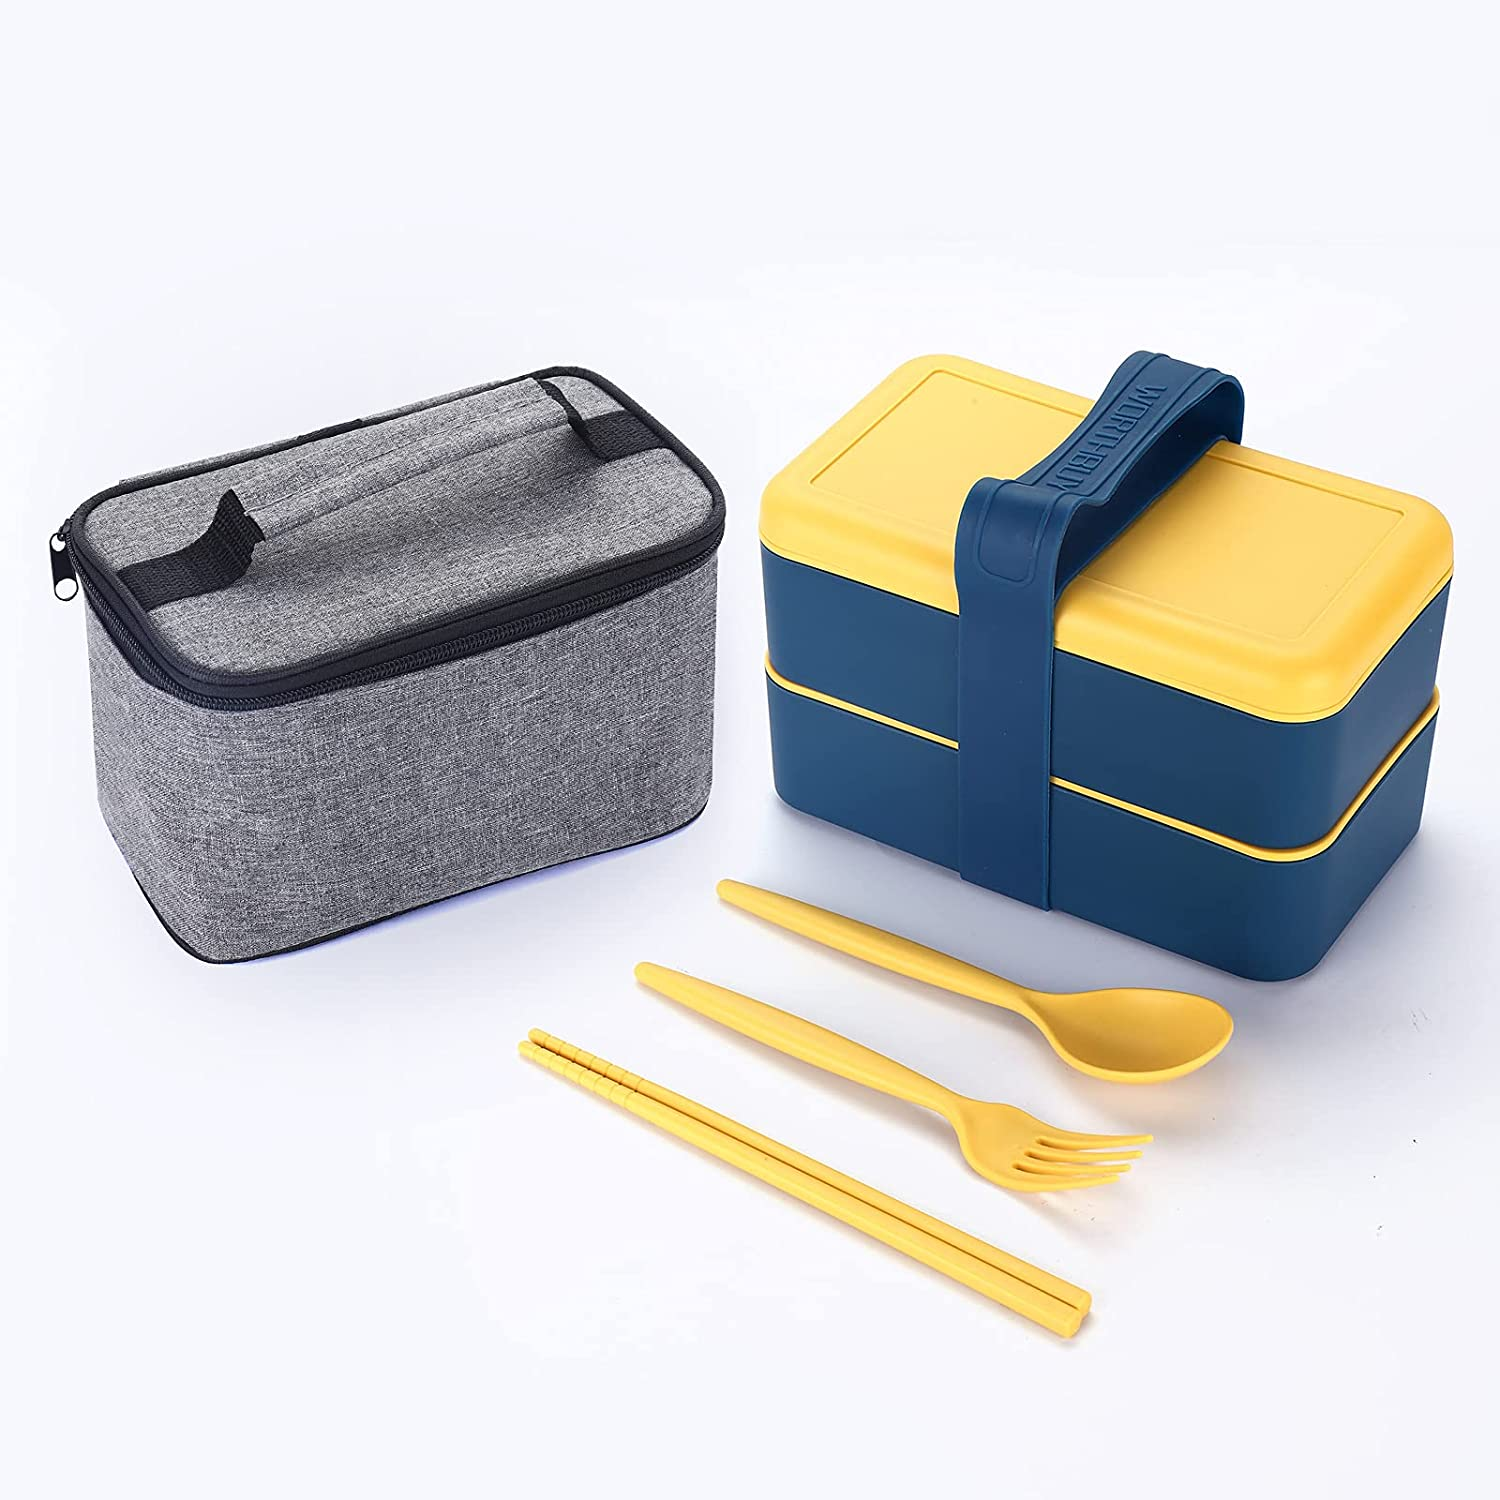 100% quality warranty! ArderLive Bento Box Wheat 67% OFF of fixed price Straw wi Portable Lunch Leakproof